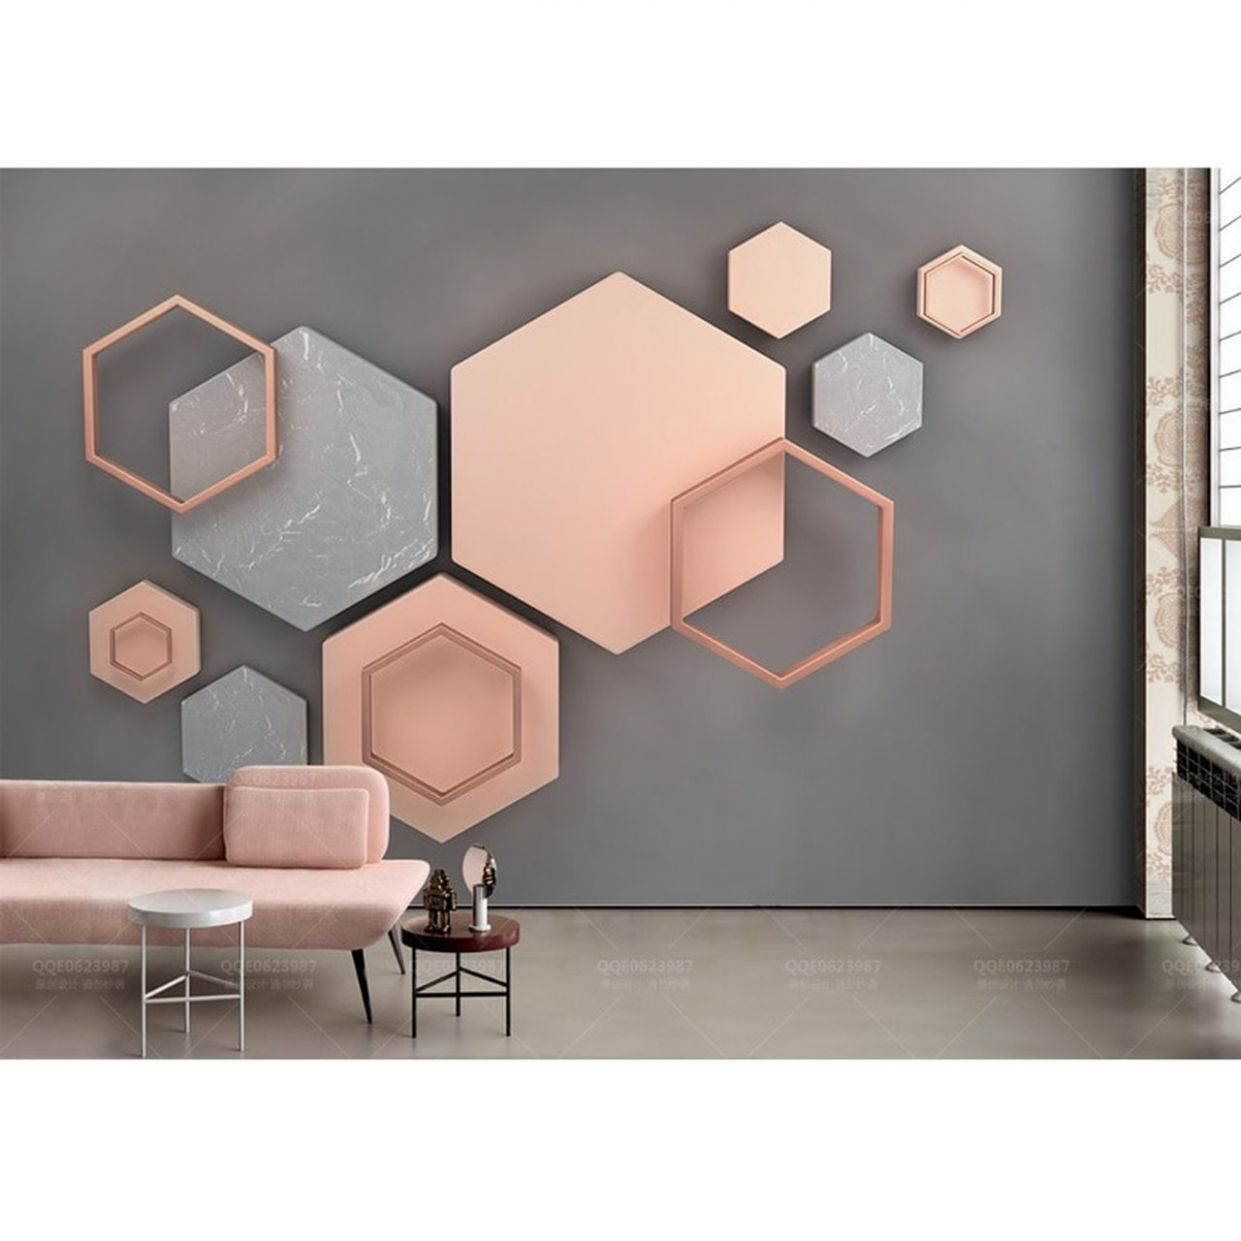 Home Decor Wall Papers Stickers Modern 12D Geometric Photo Wallpaper Mural  Living Room Bedroom Self Adhesive Vinyl/Silk Wallpaper - home decor wallpaper